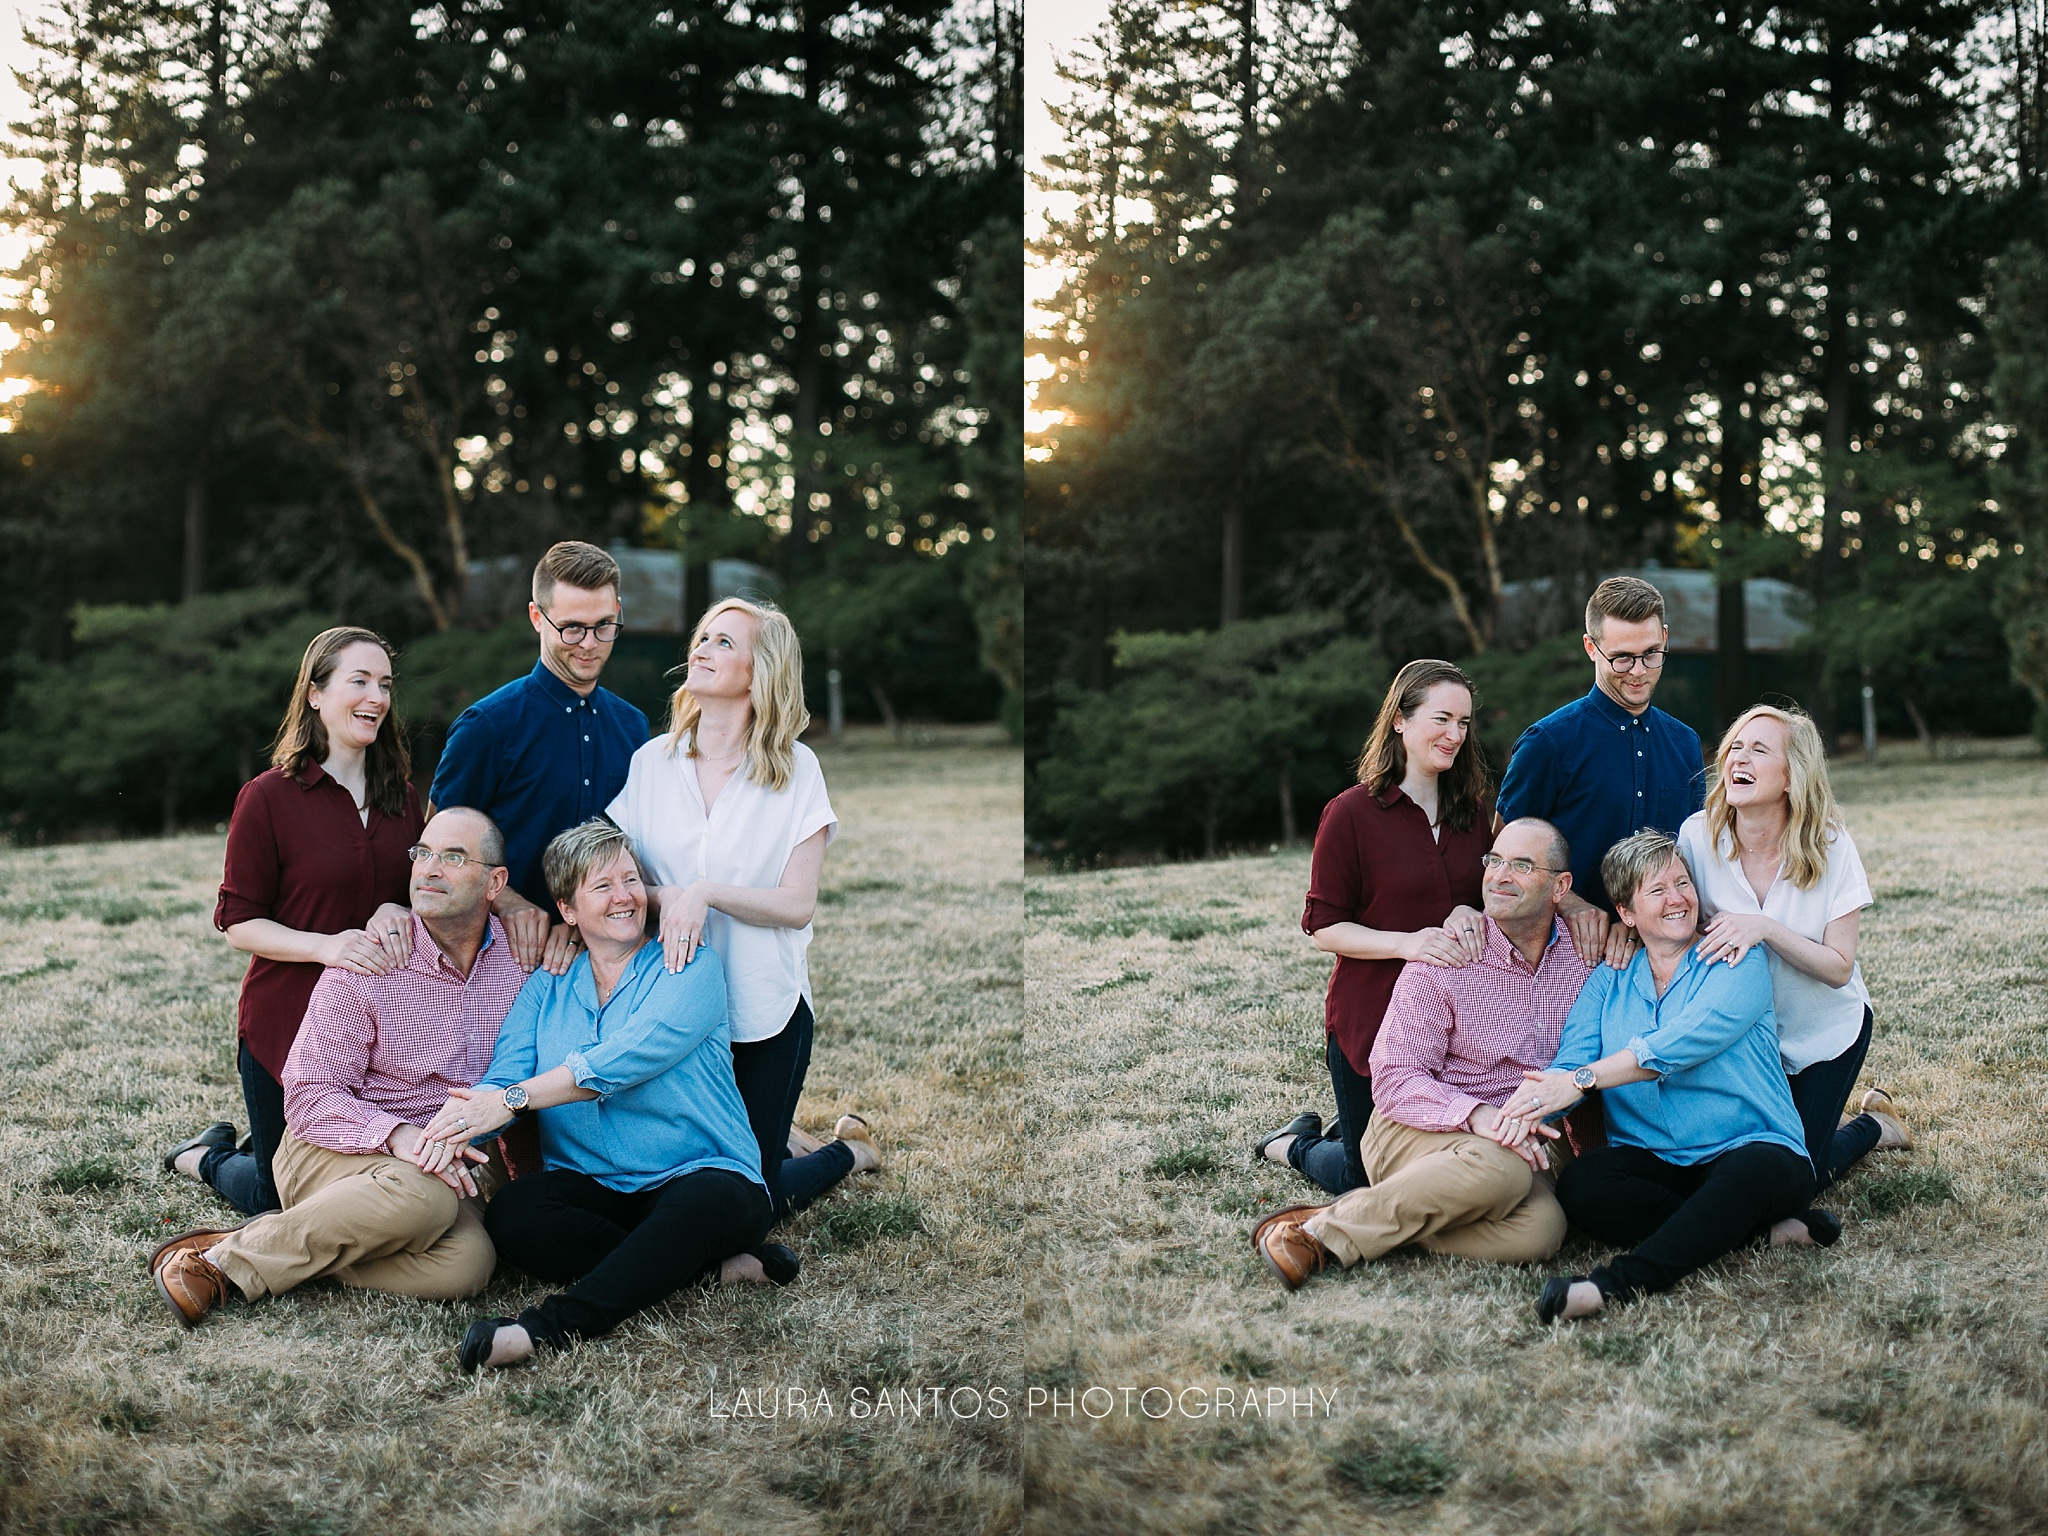 Laura Santos Photography Portland Oregon Family Photographer_0058.jpg